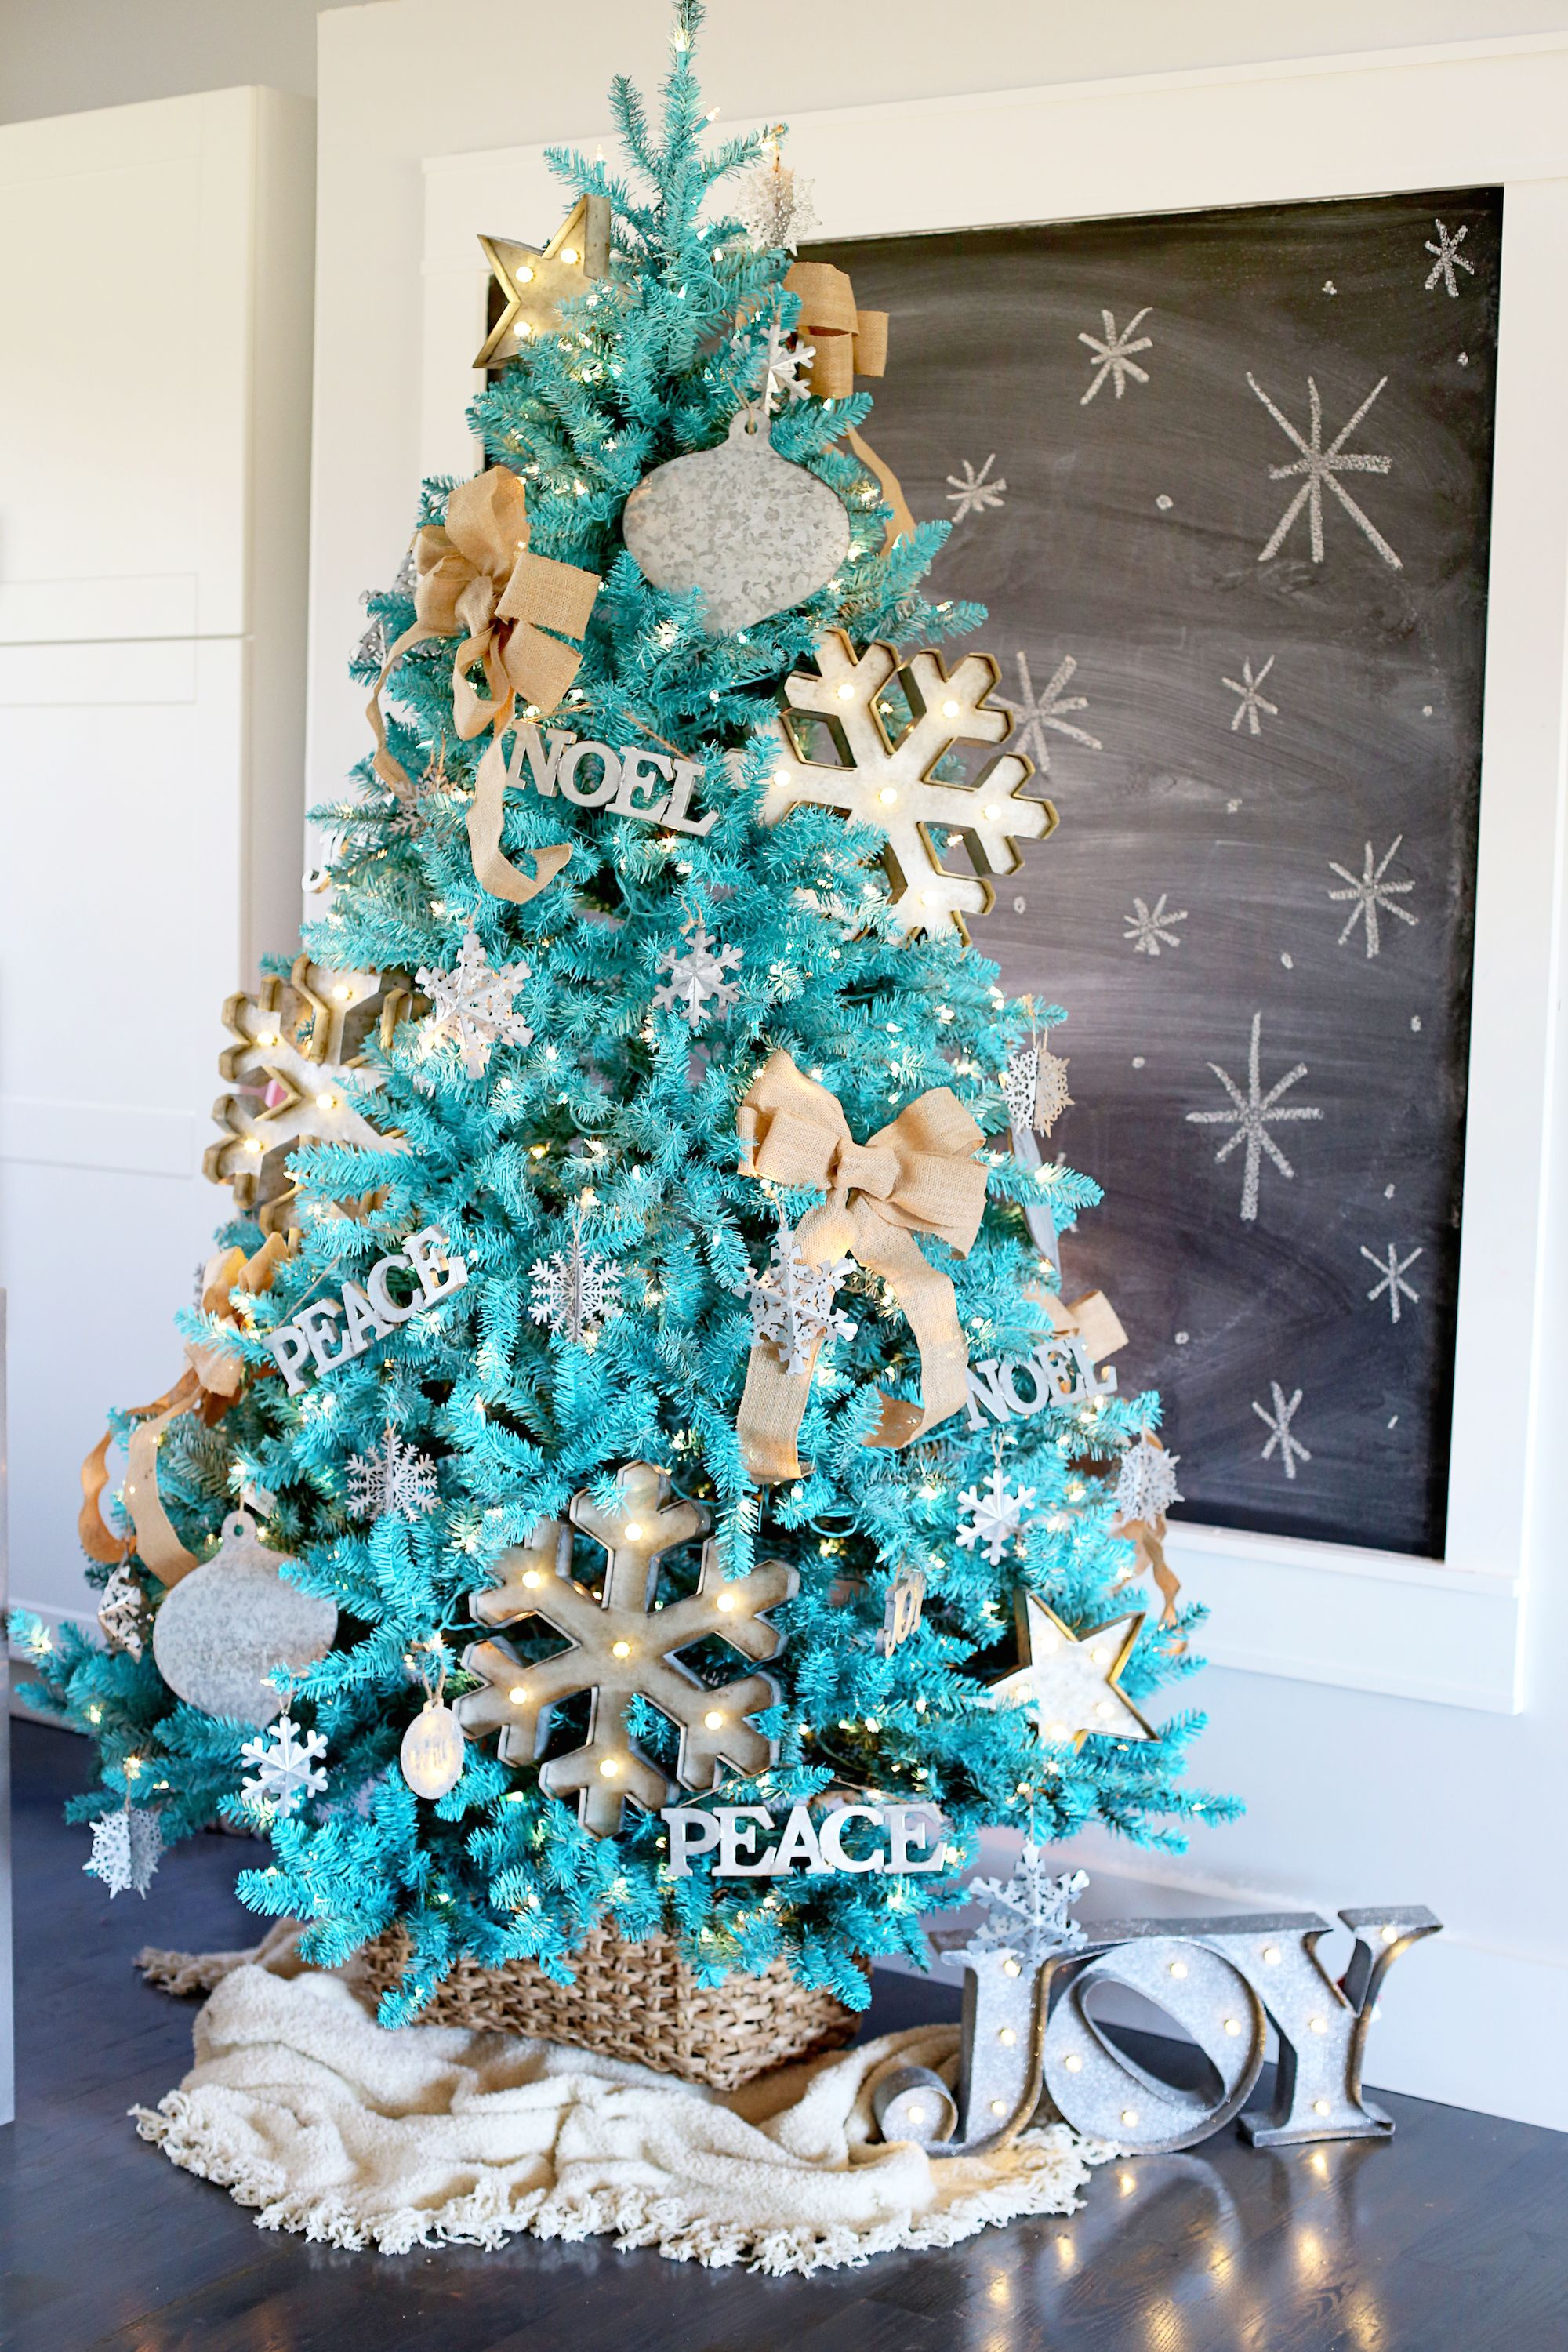 design pictures decorate tree decoratedchristmas christmas beautiful studio decoration tomkat decor ideas